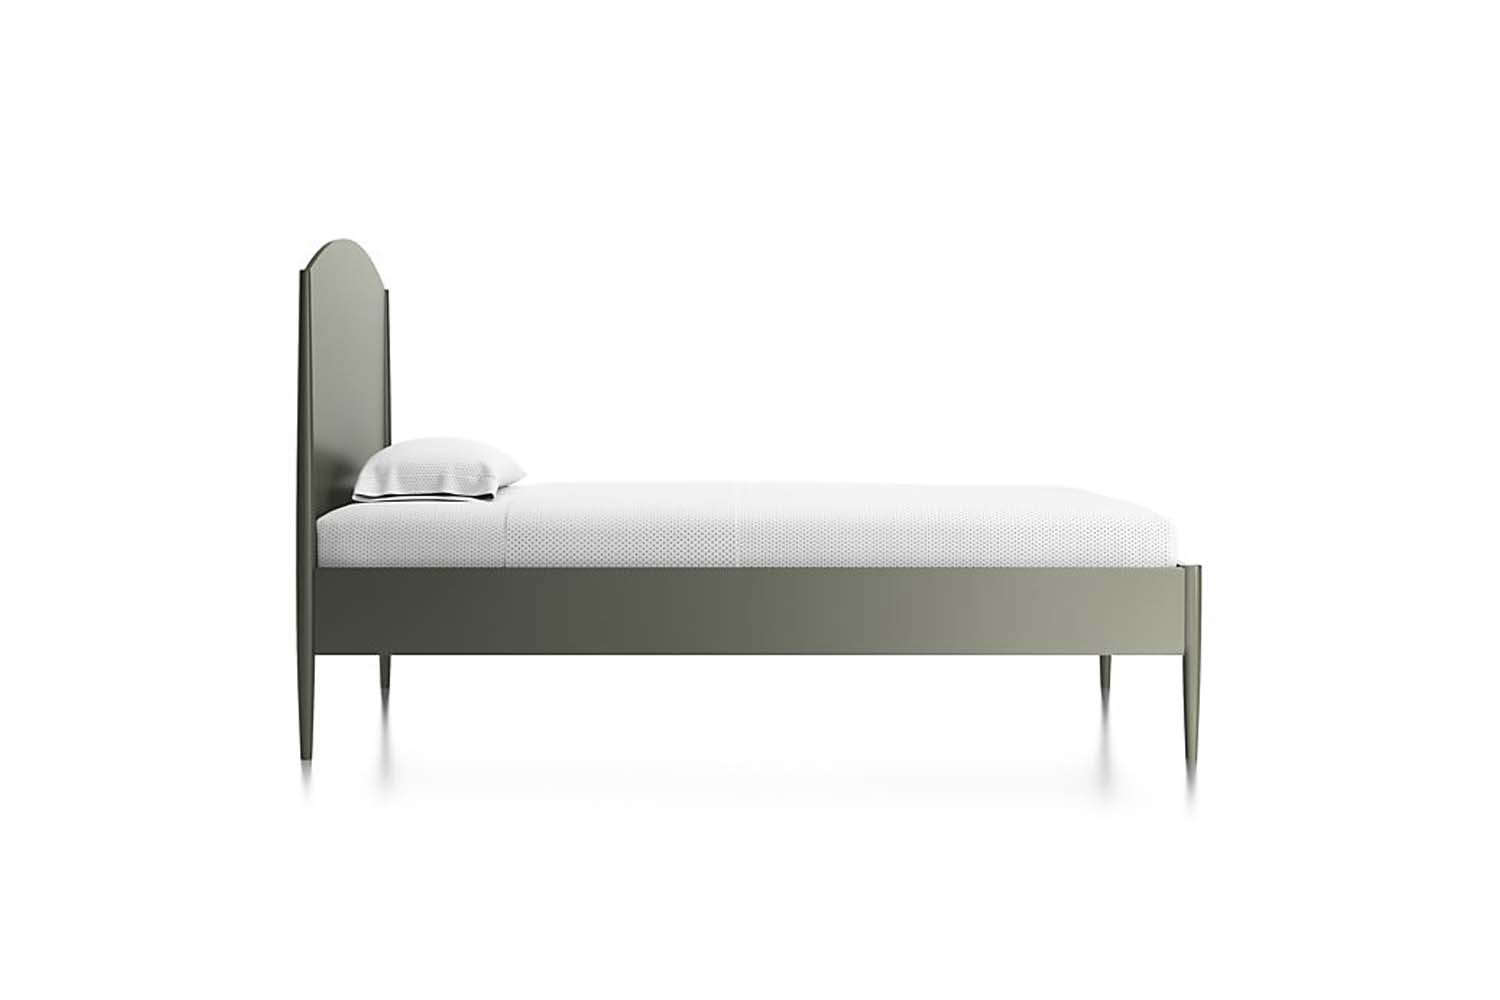 The Crate & Barrel Hampshire Olive Green Arched Bed is on sale for $9.65 to $594. depending on size.